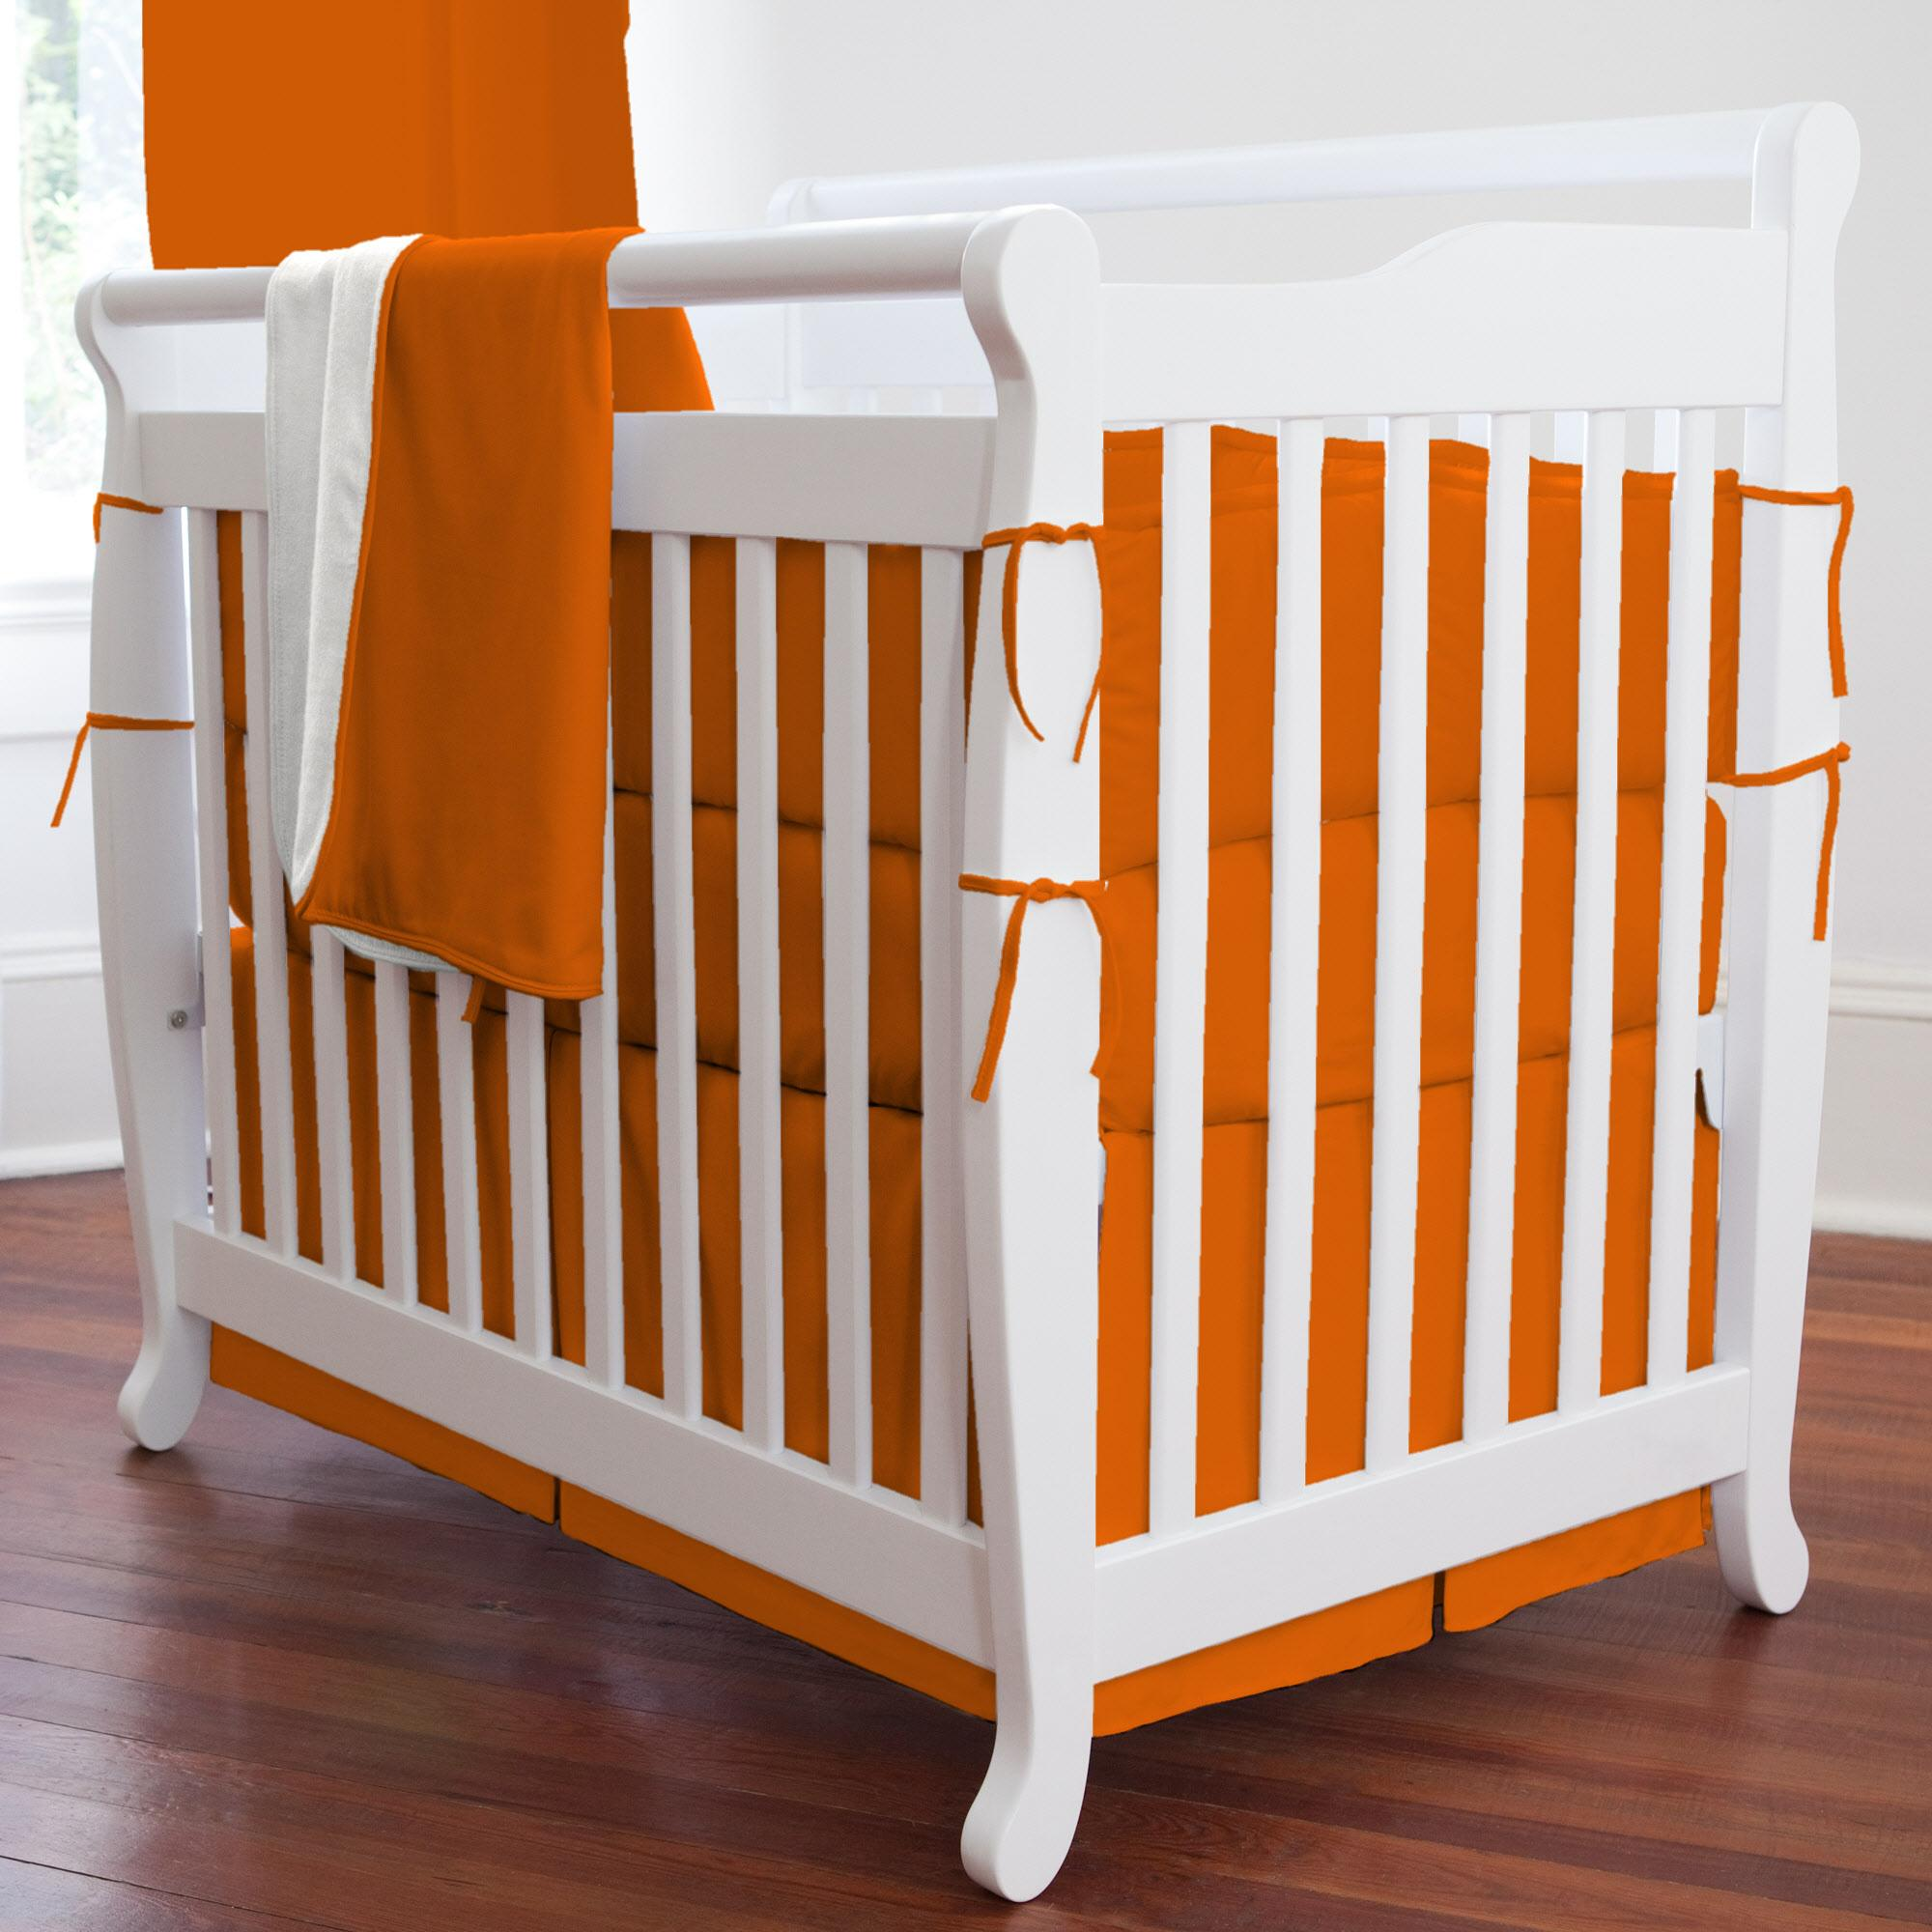 Crib Bumper Pads | Bumper Pads for Baby Cribs | Should Bumper Pads Be Used in Cribs